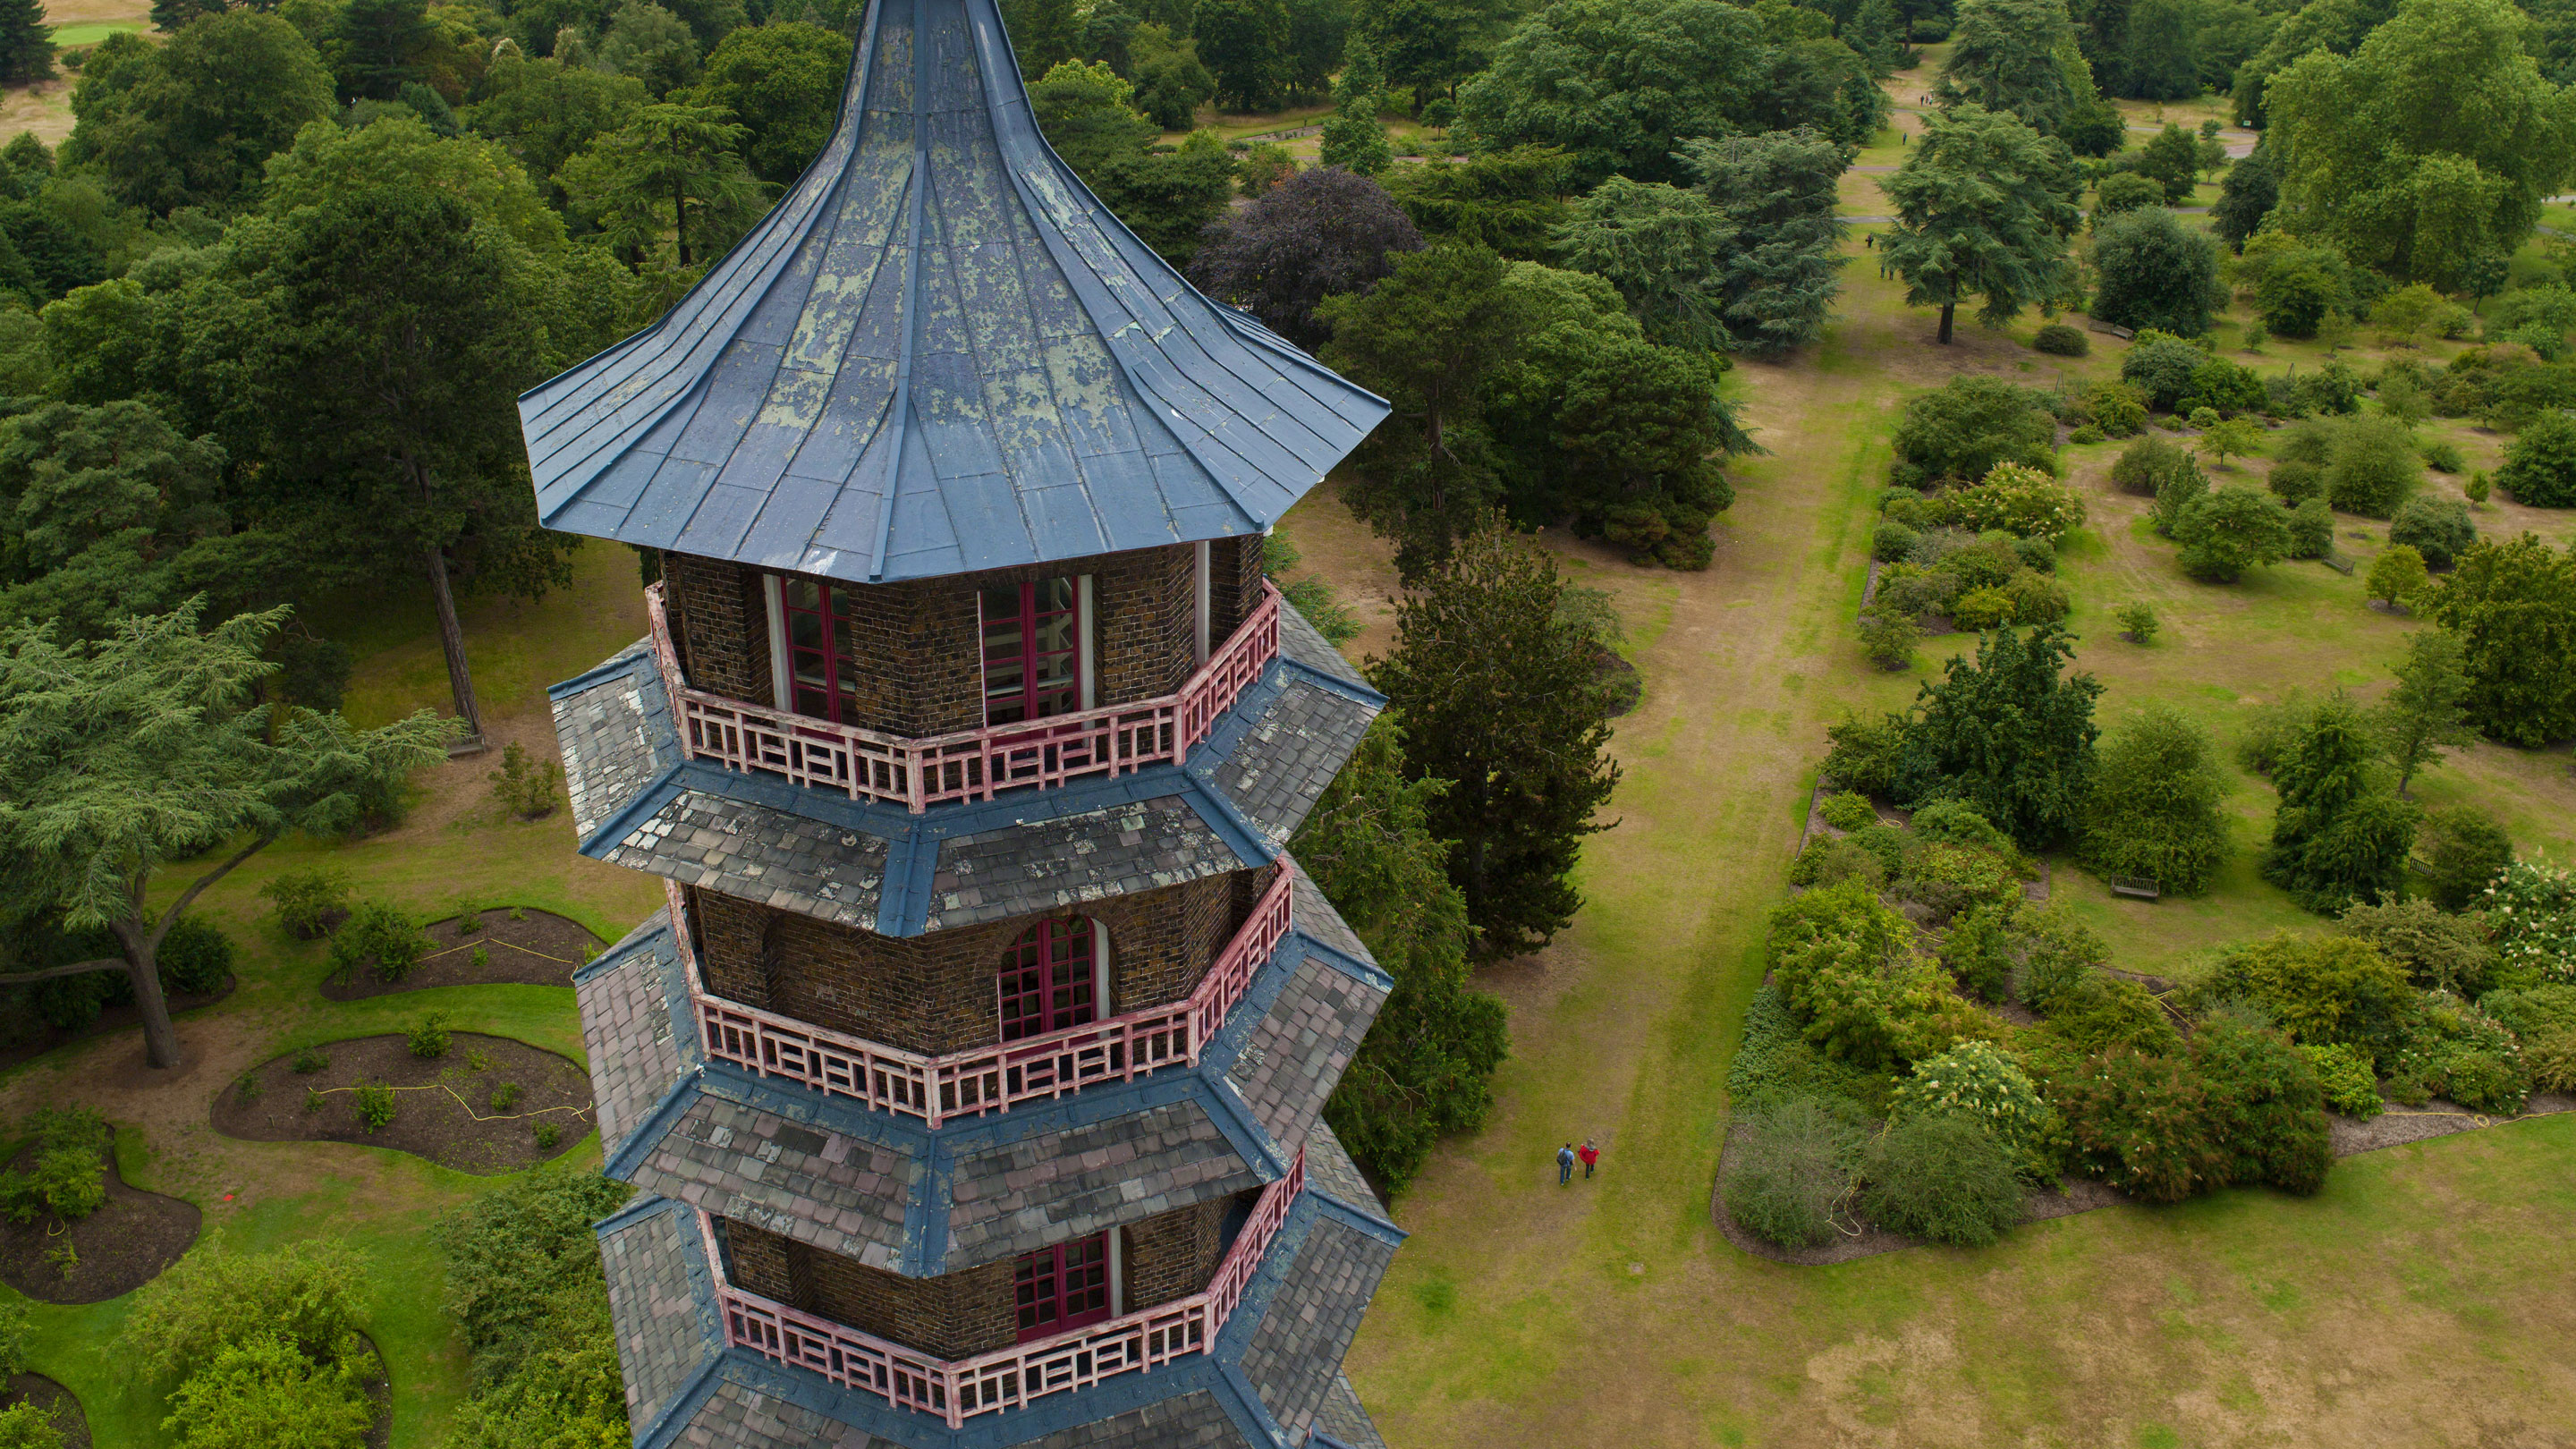 Aerial view of the Great Pagoda